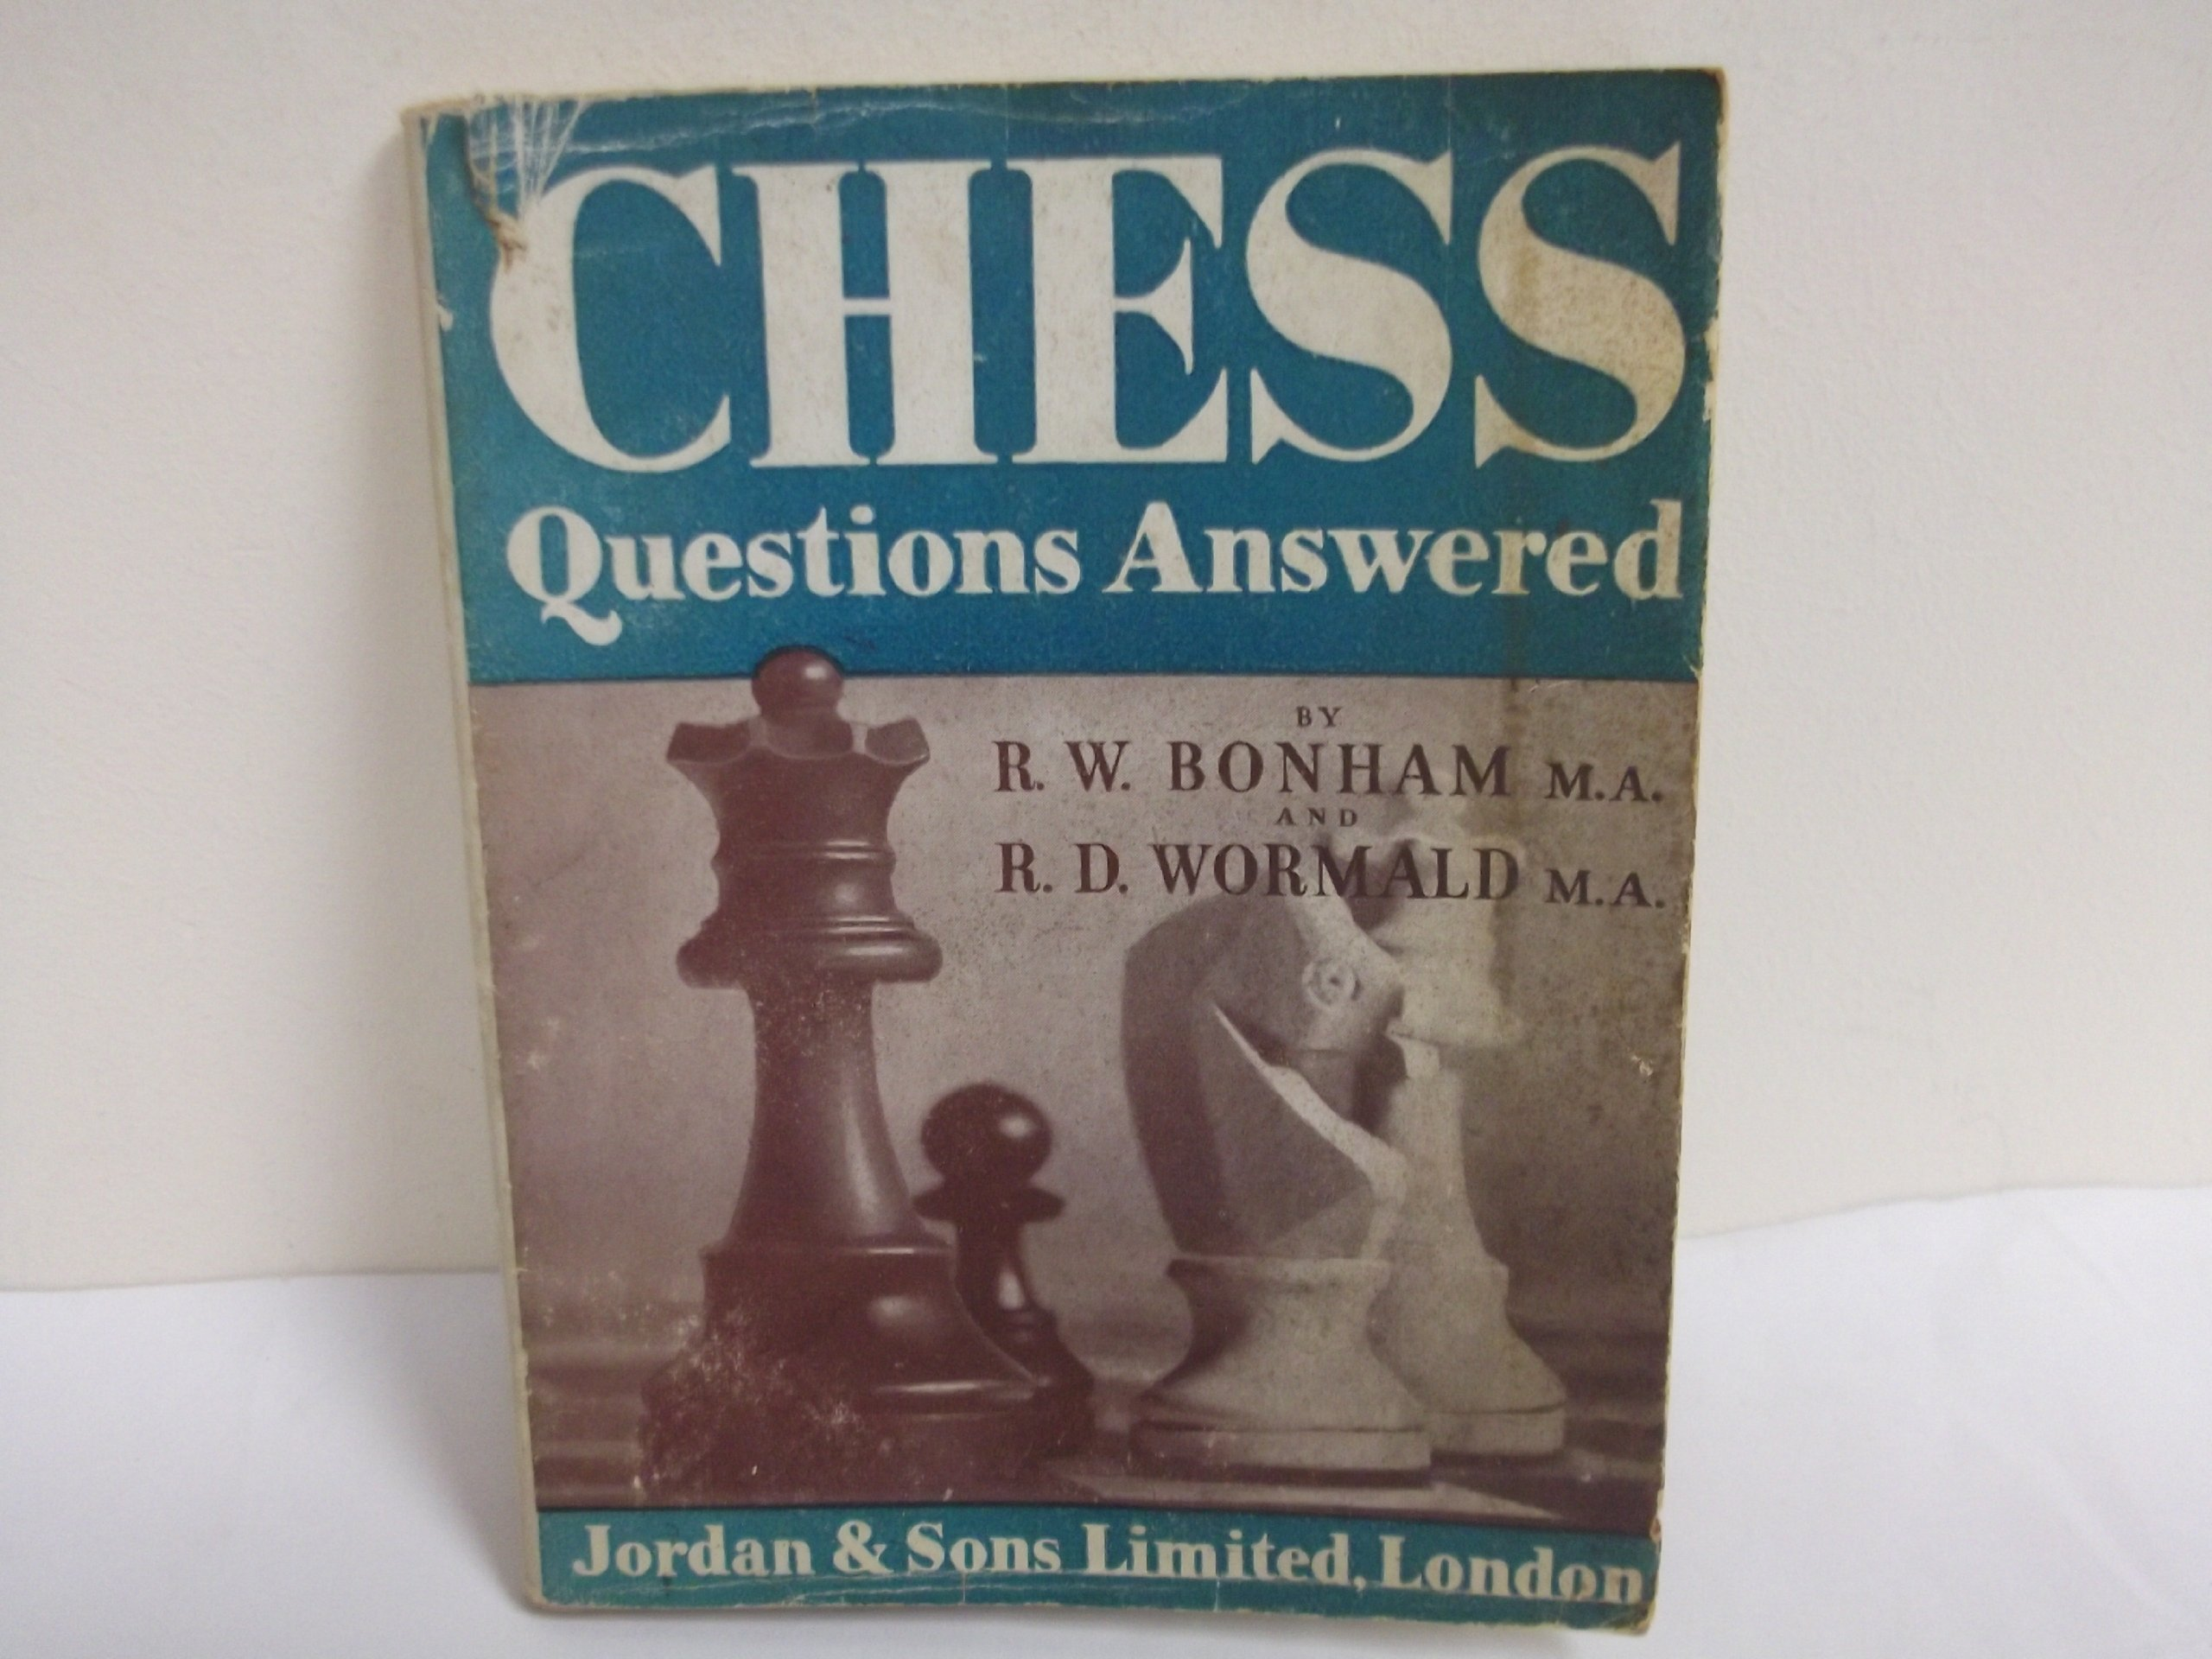 Chess Questions Answered, RW Bonham & RD Wormald, Jordan & Sons Ltd, London, 1945